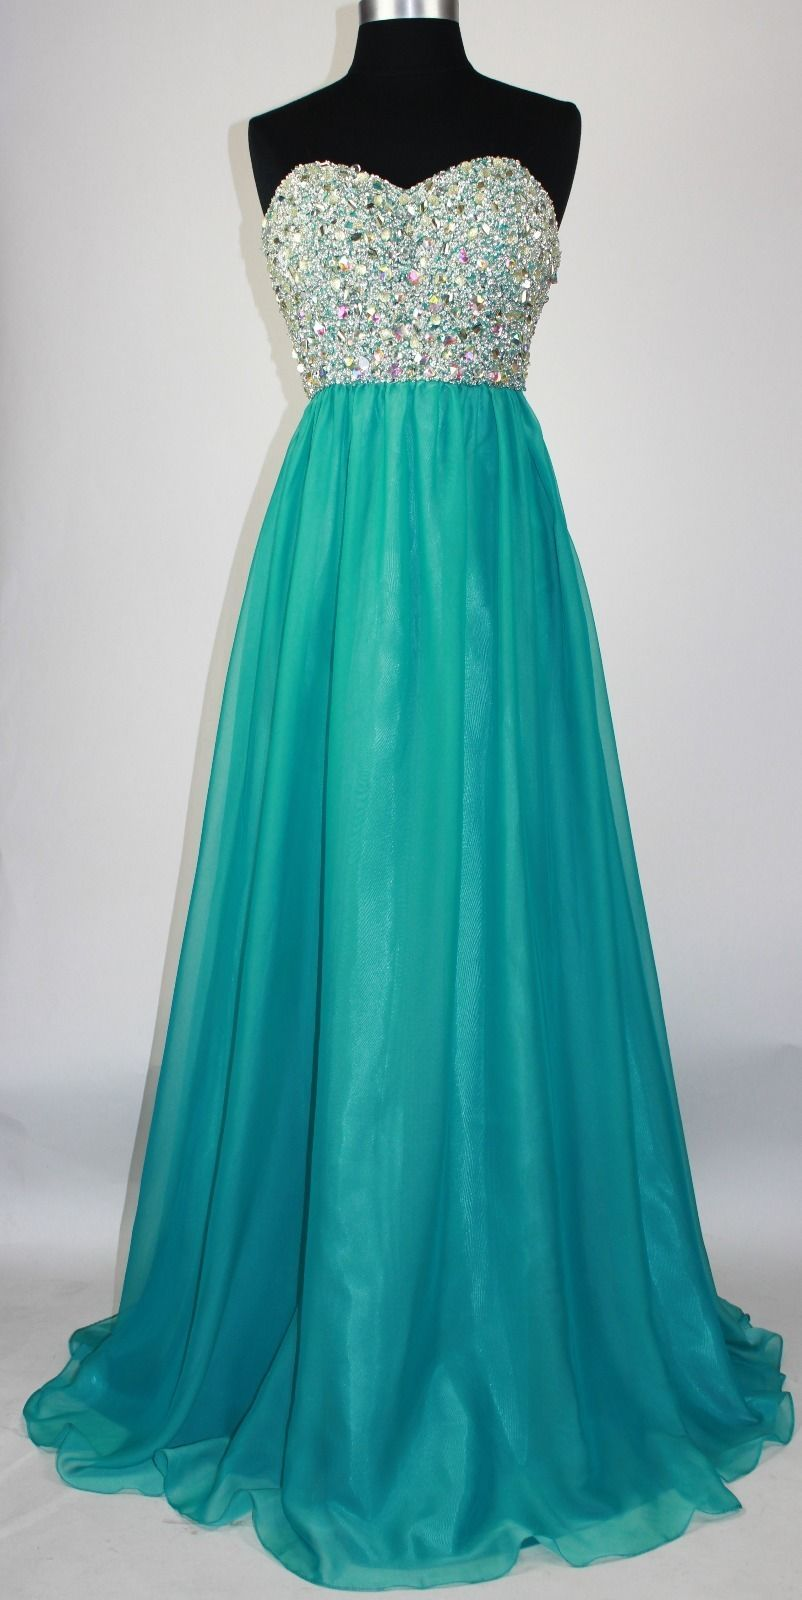 New Teal Prom Dresses Long Elegant Strapless Beaded Evening Gowns ...